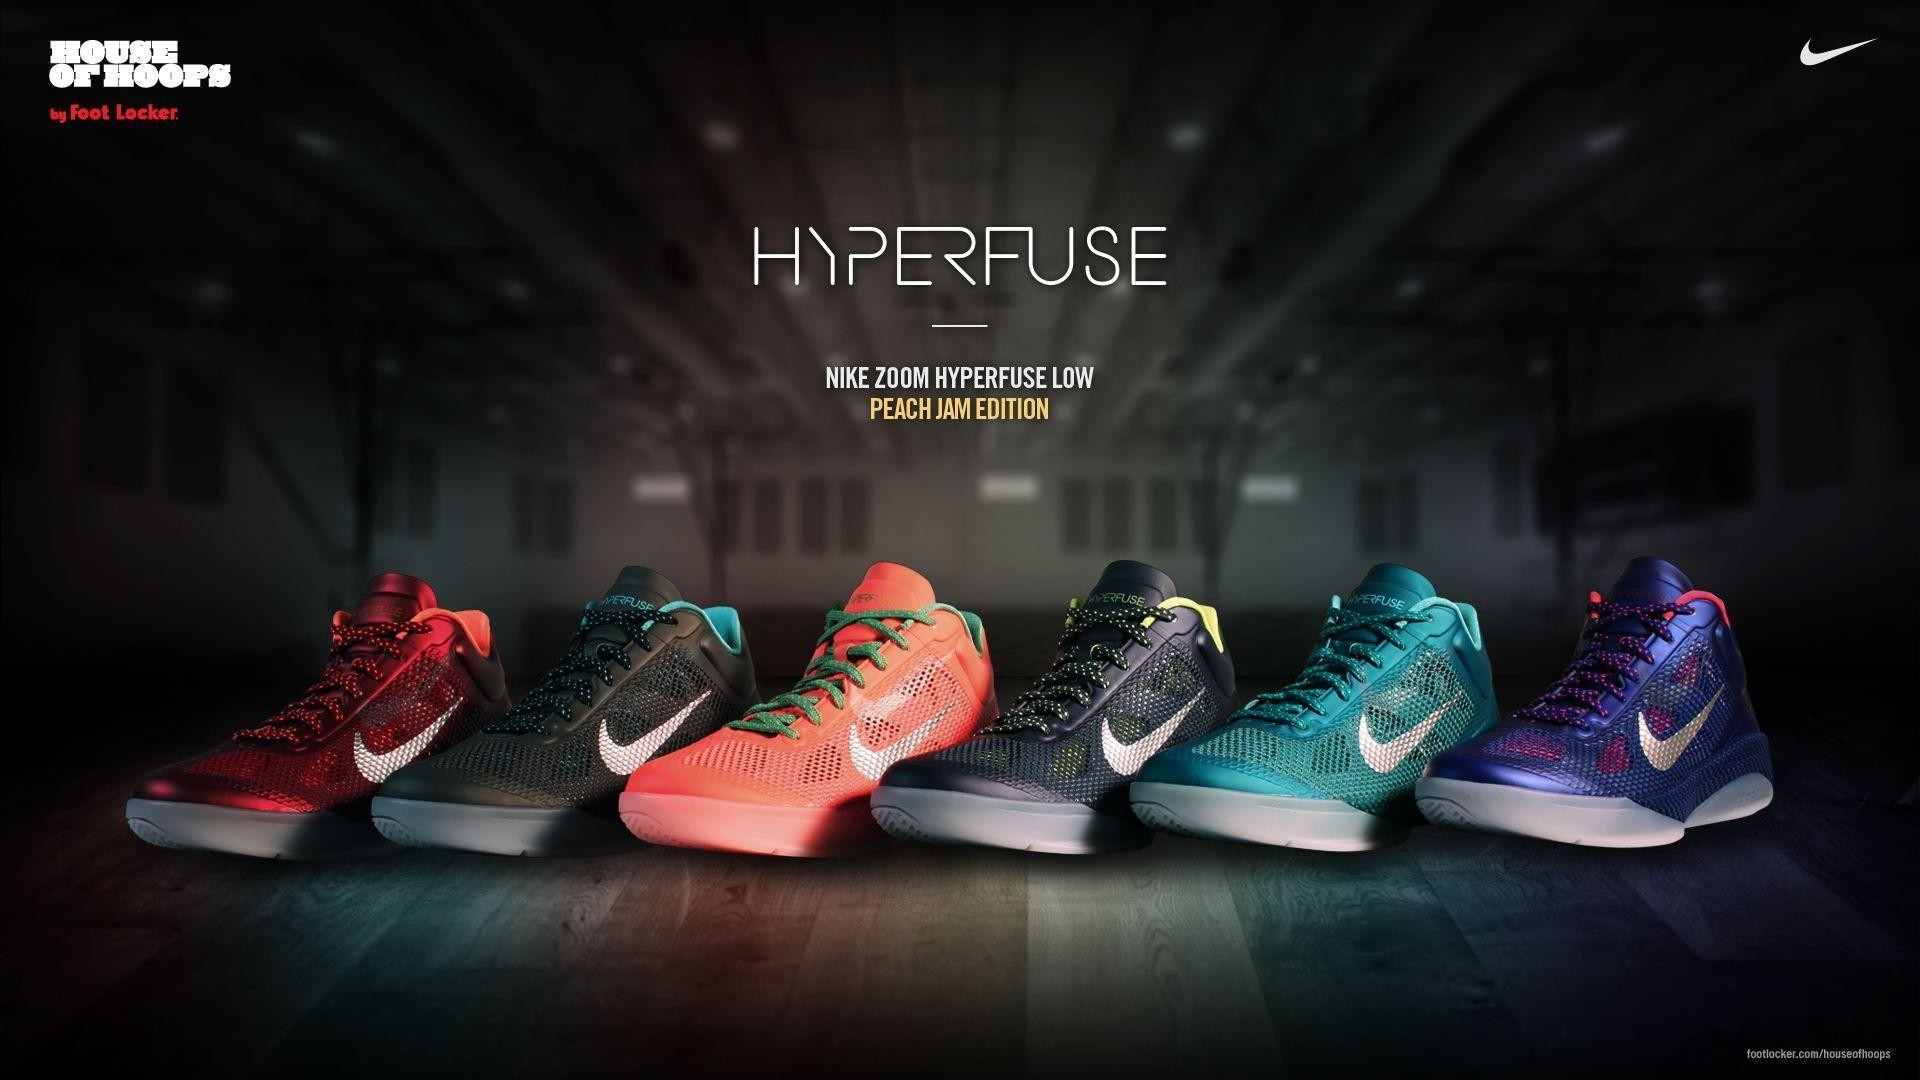 Res: 1920x1080, Nike Basketball Wallpapers Hd - Viewing Gallery